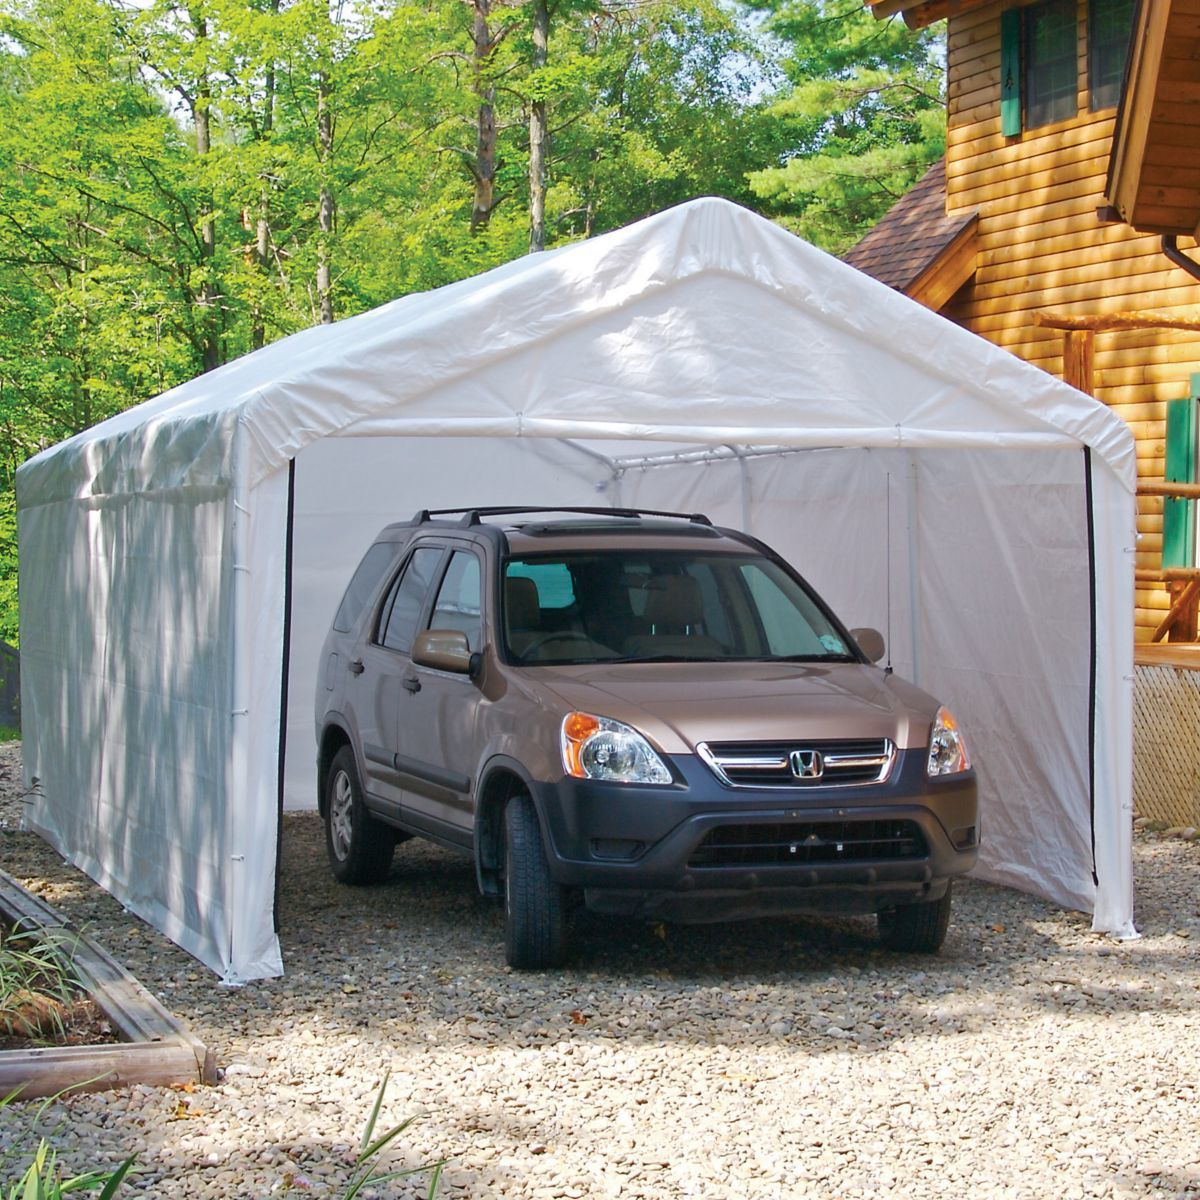 ShelterLogic® 10' x 20' Enclosure Kit